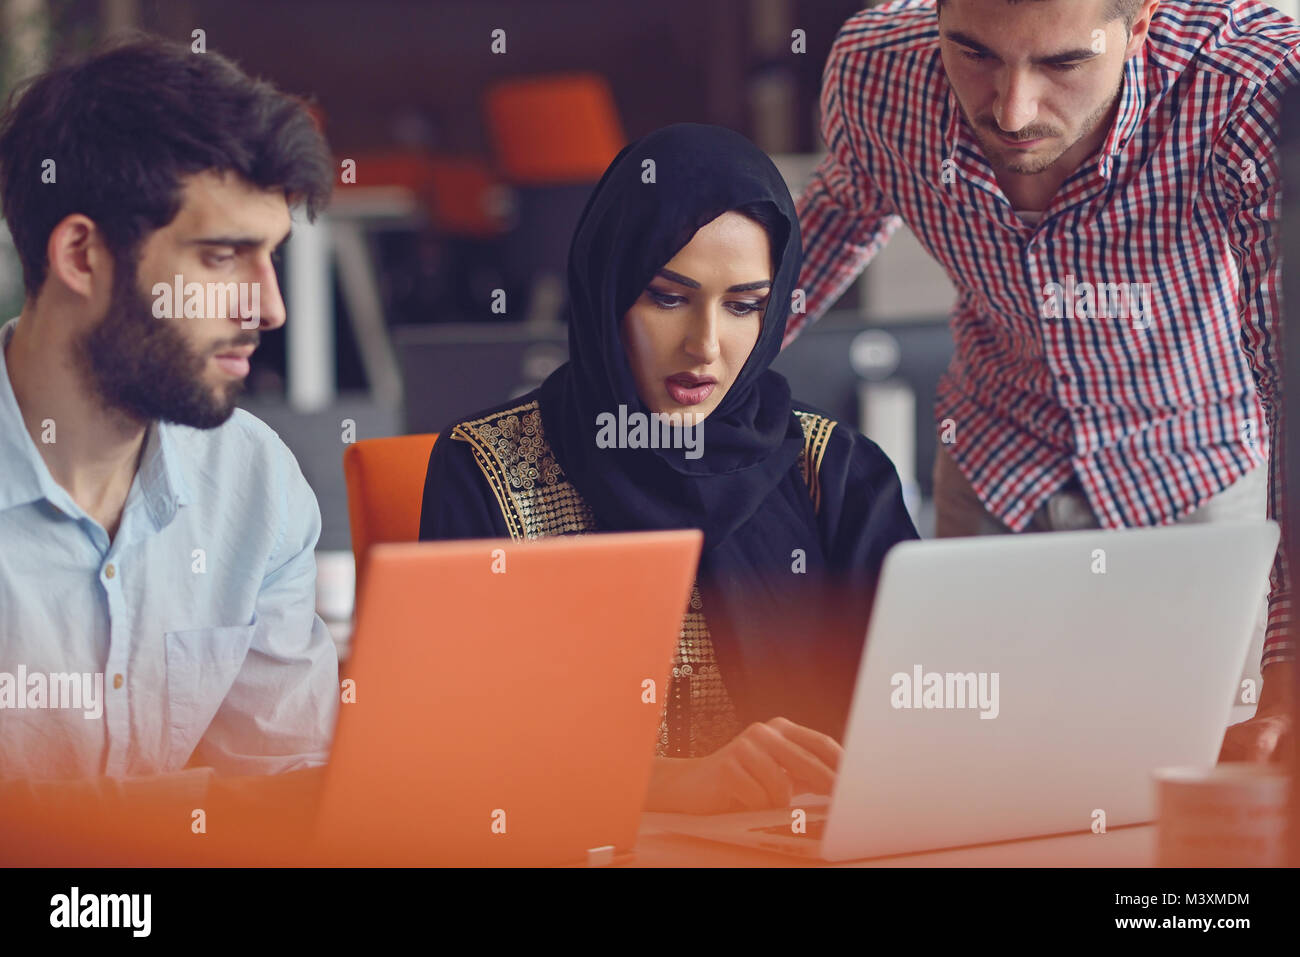 Group Young Coworkers Making Great Business Decisions.Creative Team Discussion Corporate Work Concept Modern Office. - Stock Image